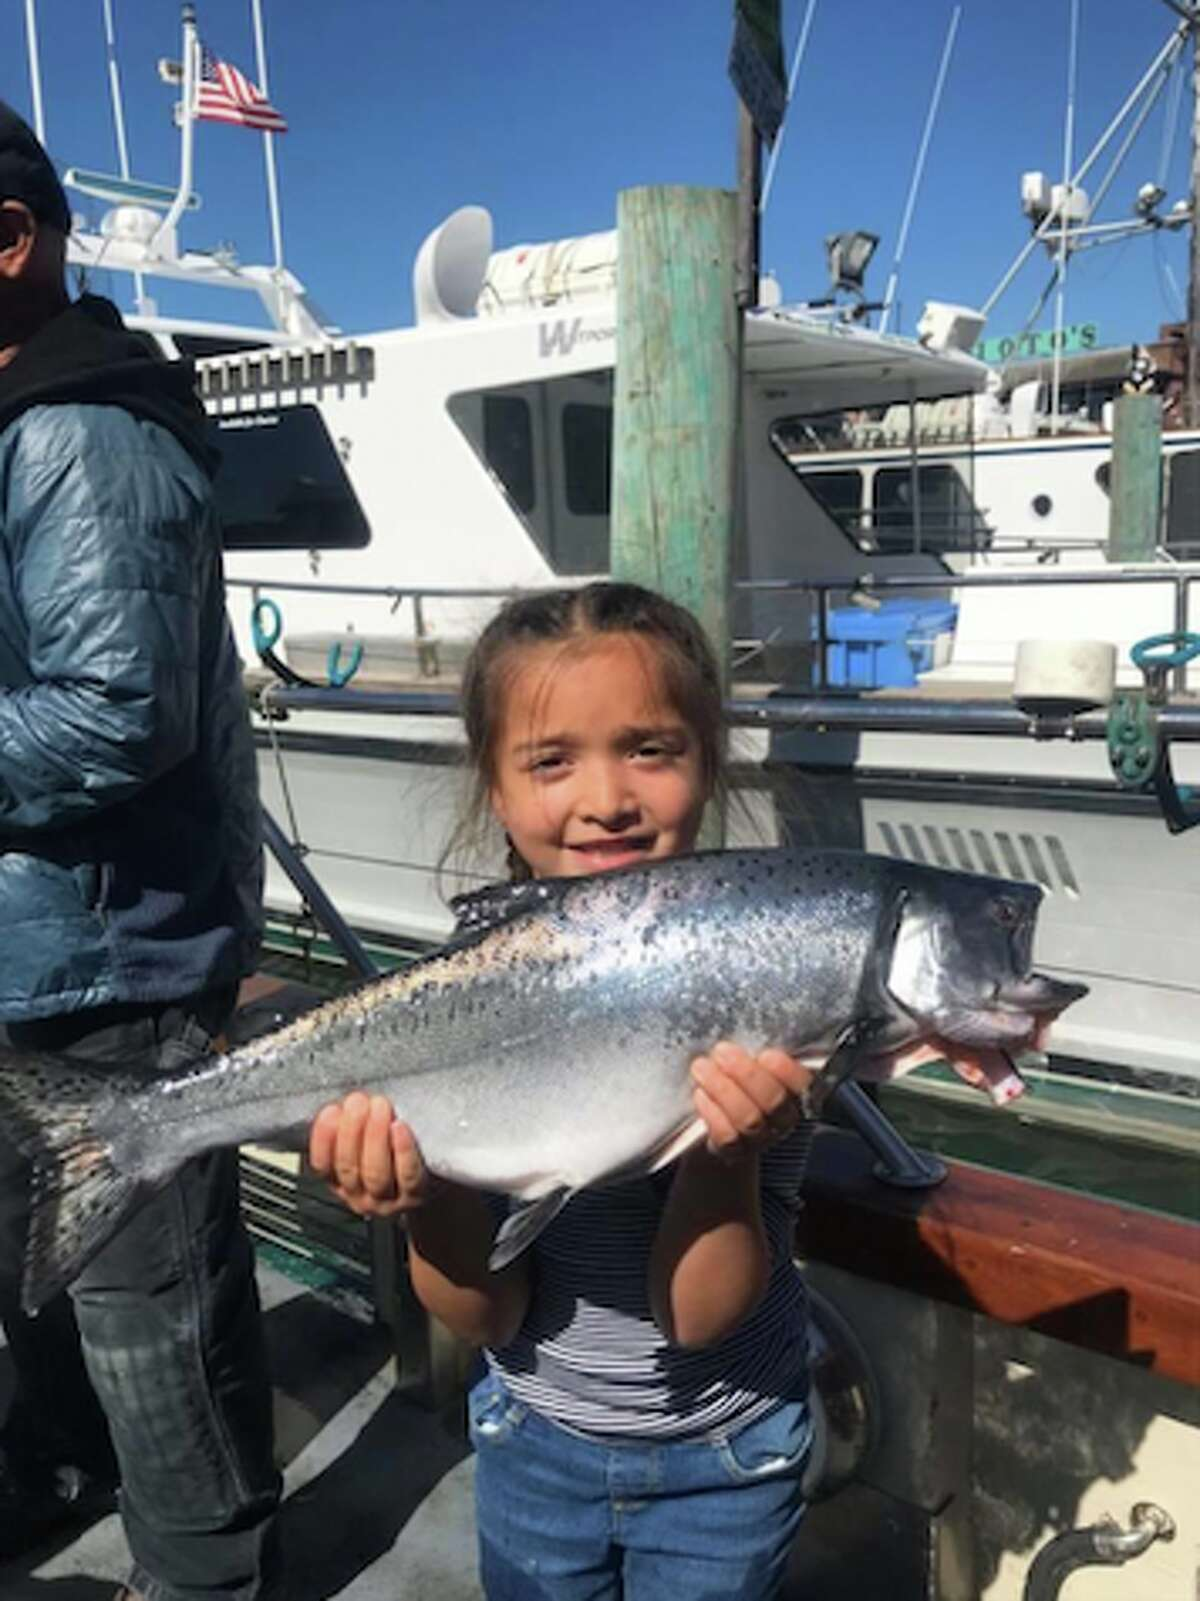 Fisherman's Wharf-based Lovely Martha Sportfishing is unsure of which stage of reopening it falls under.